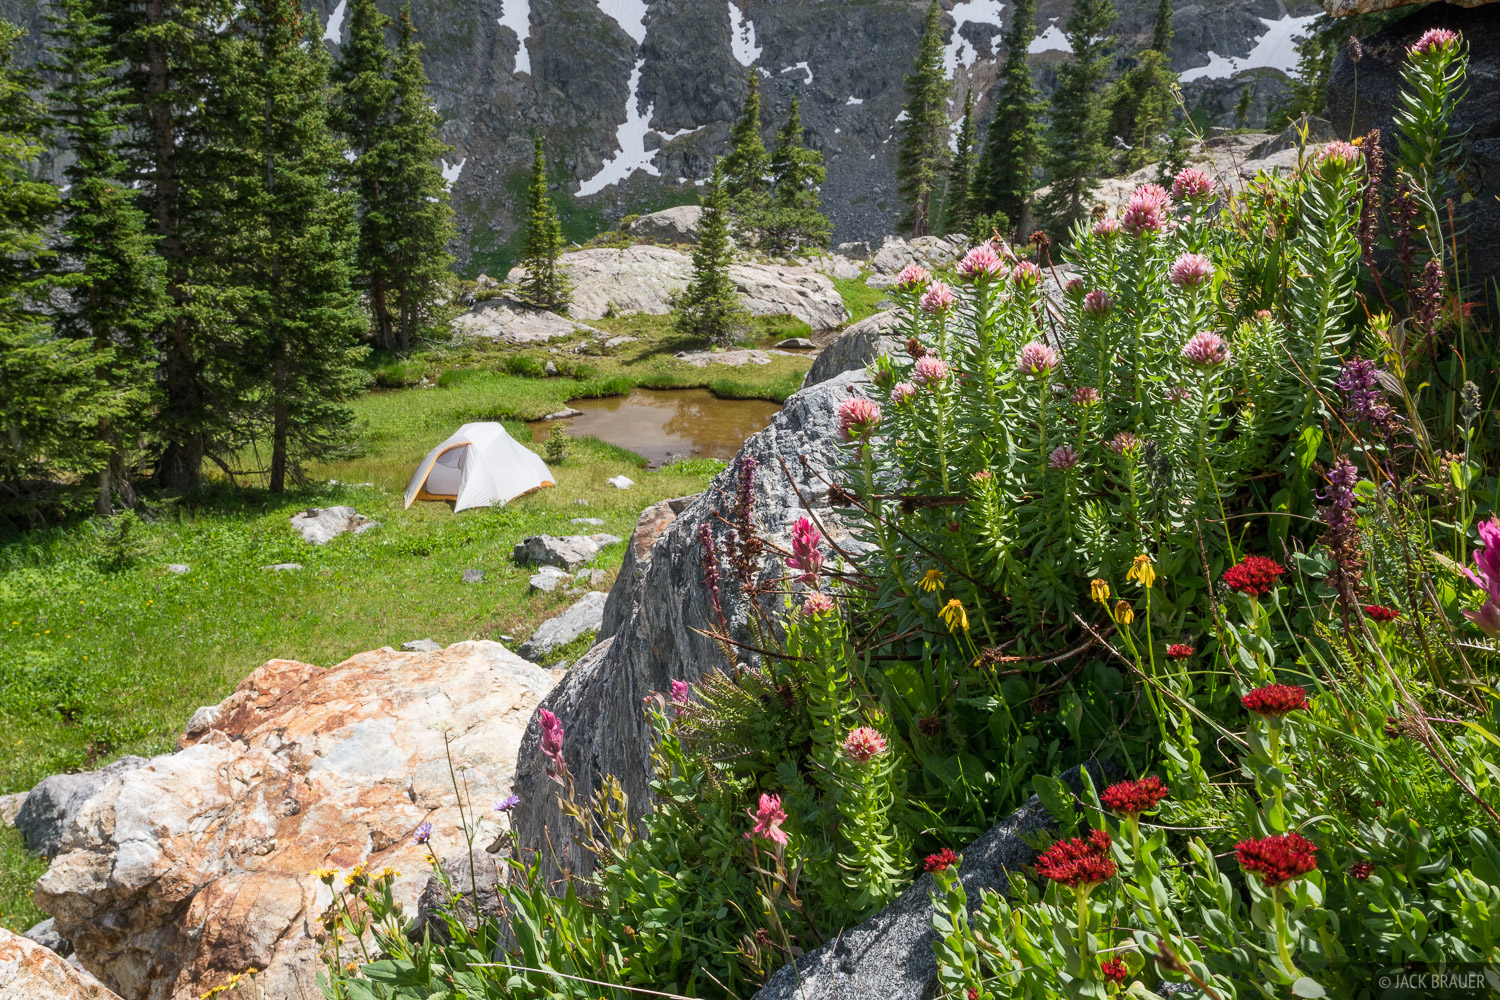 A flower garden above our third night's tent site.